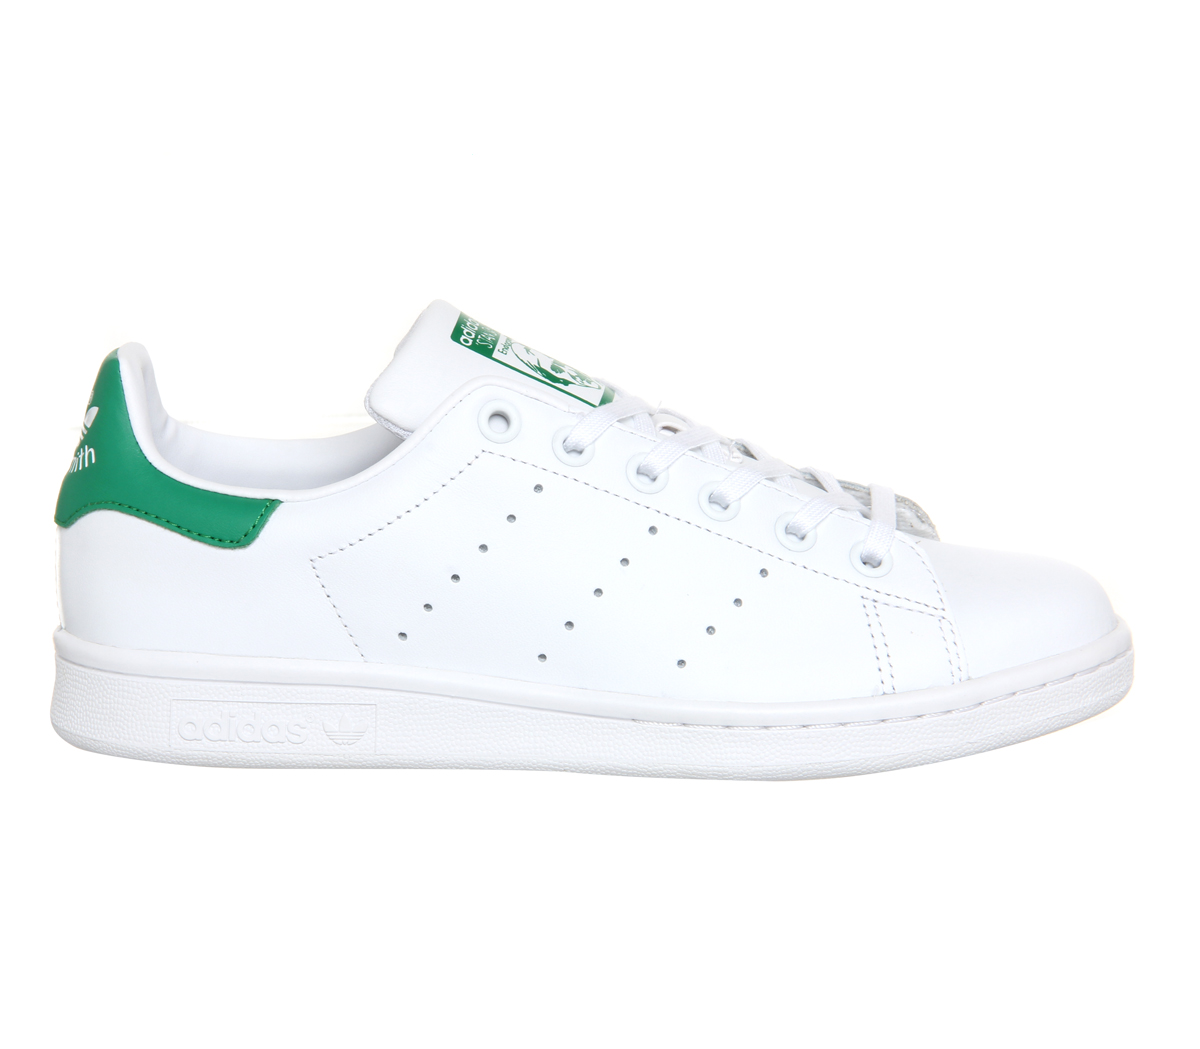 Sentinel Mens Adidas Stan Smith Trainers Core White Green Trainers Shoes b4a12539e01ab